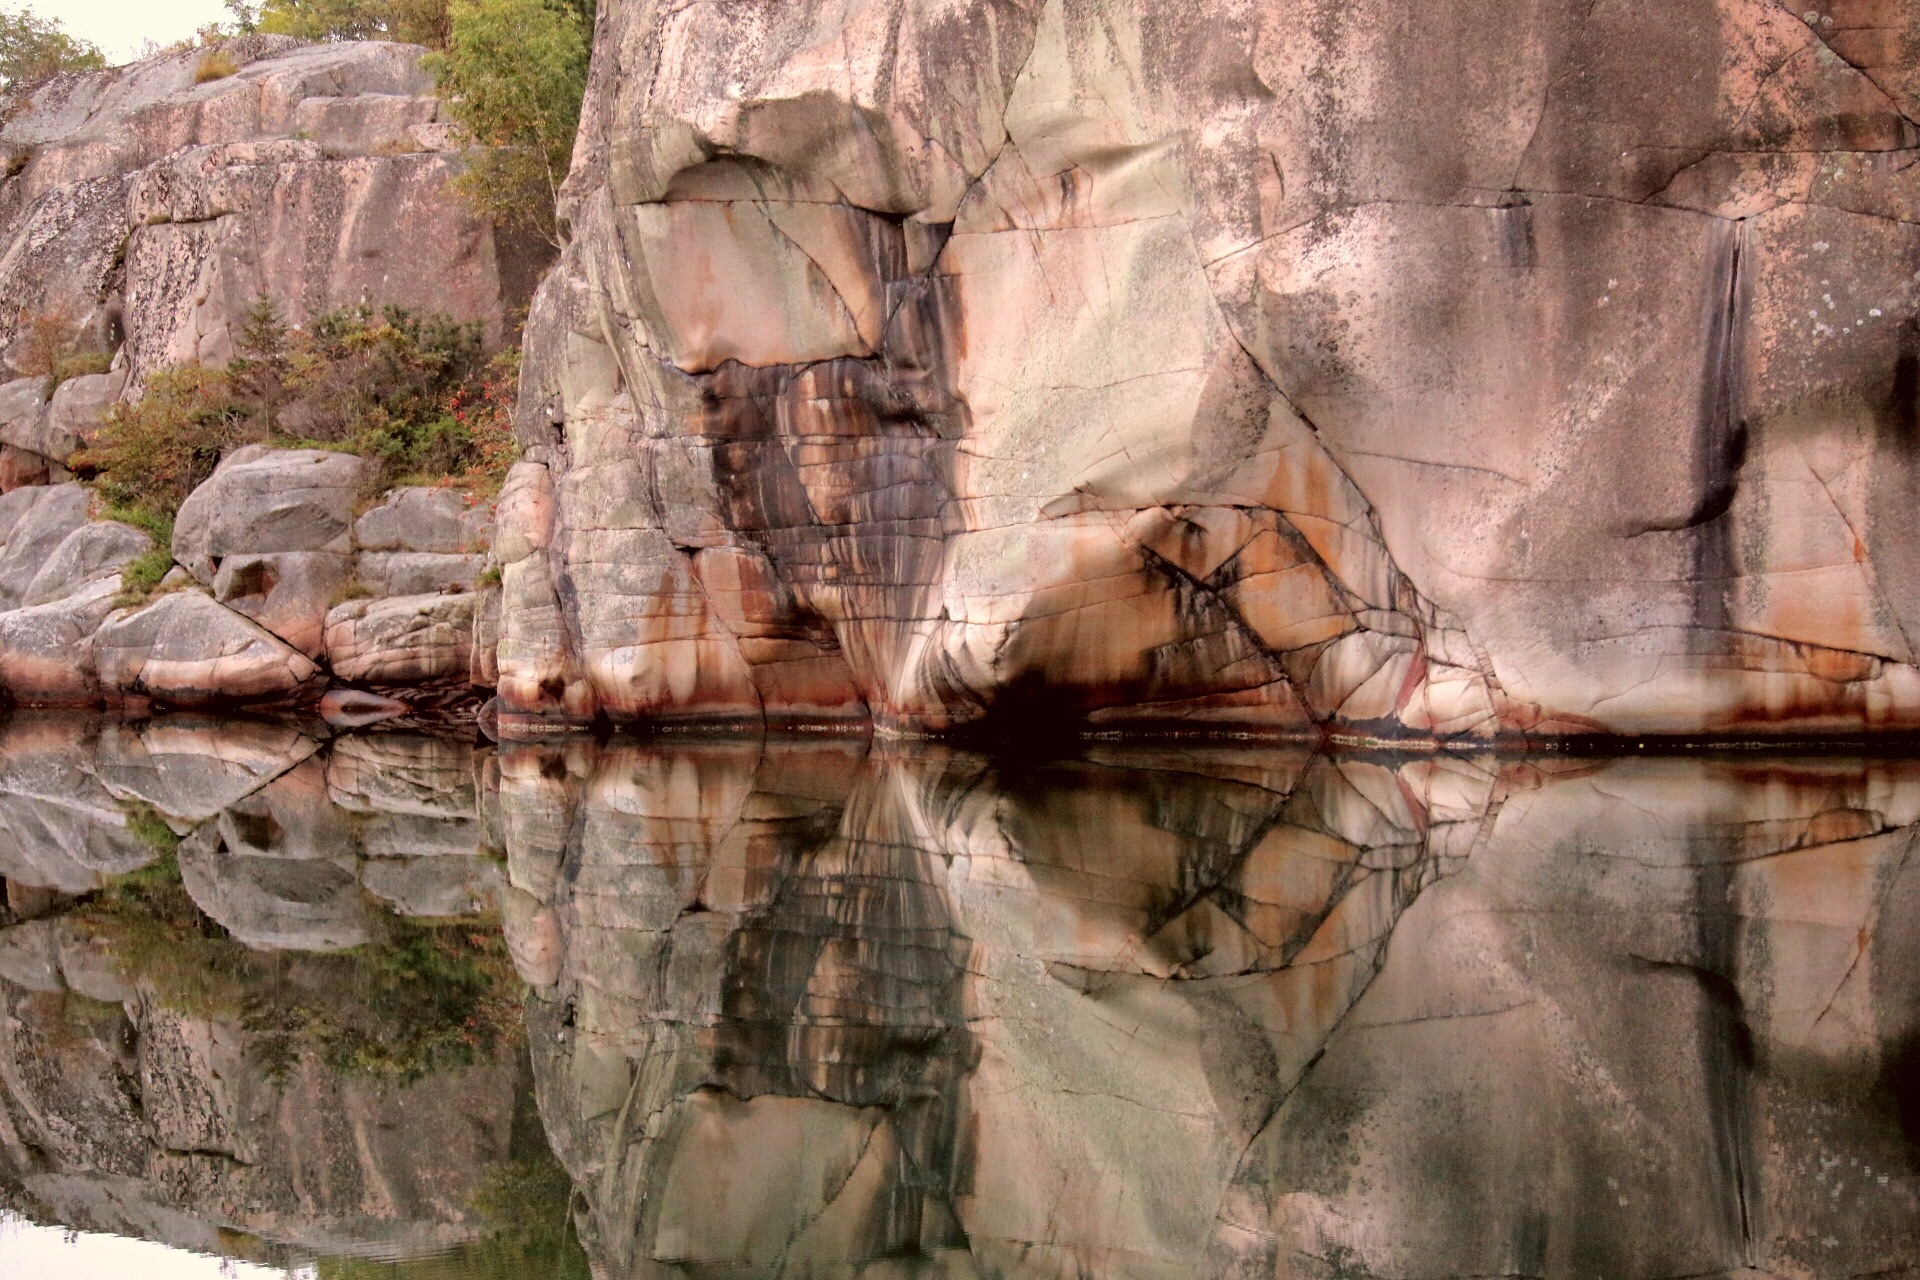 Reflections by Ingstina